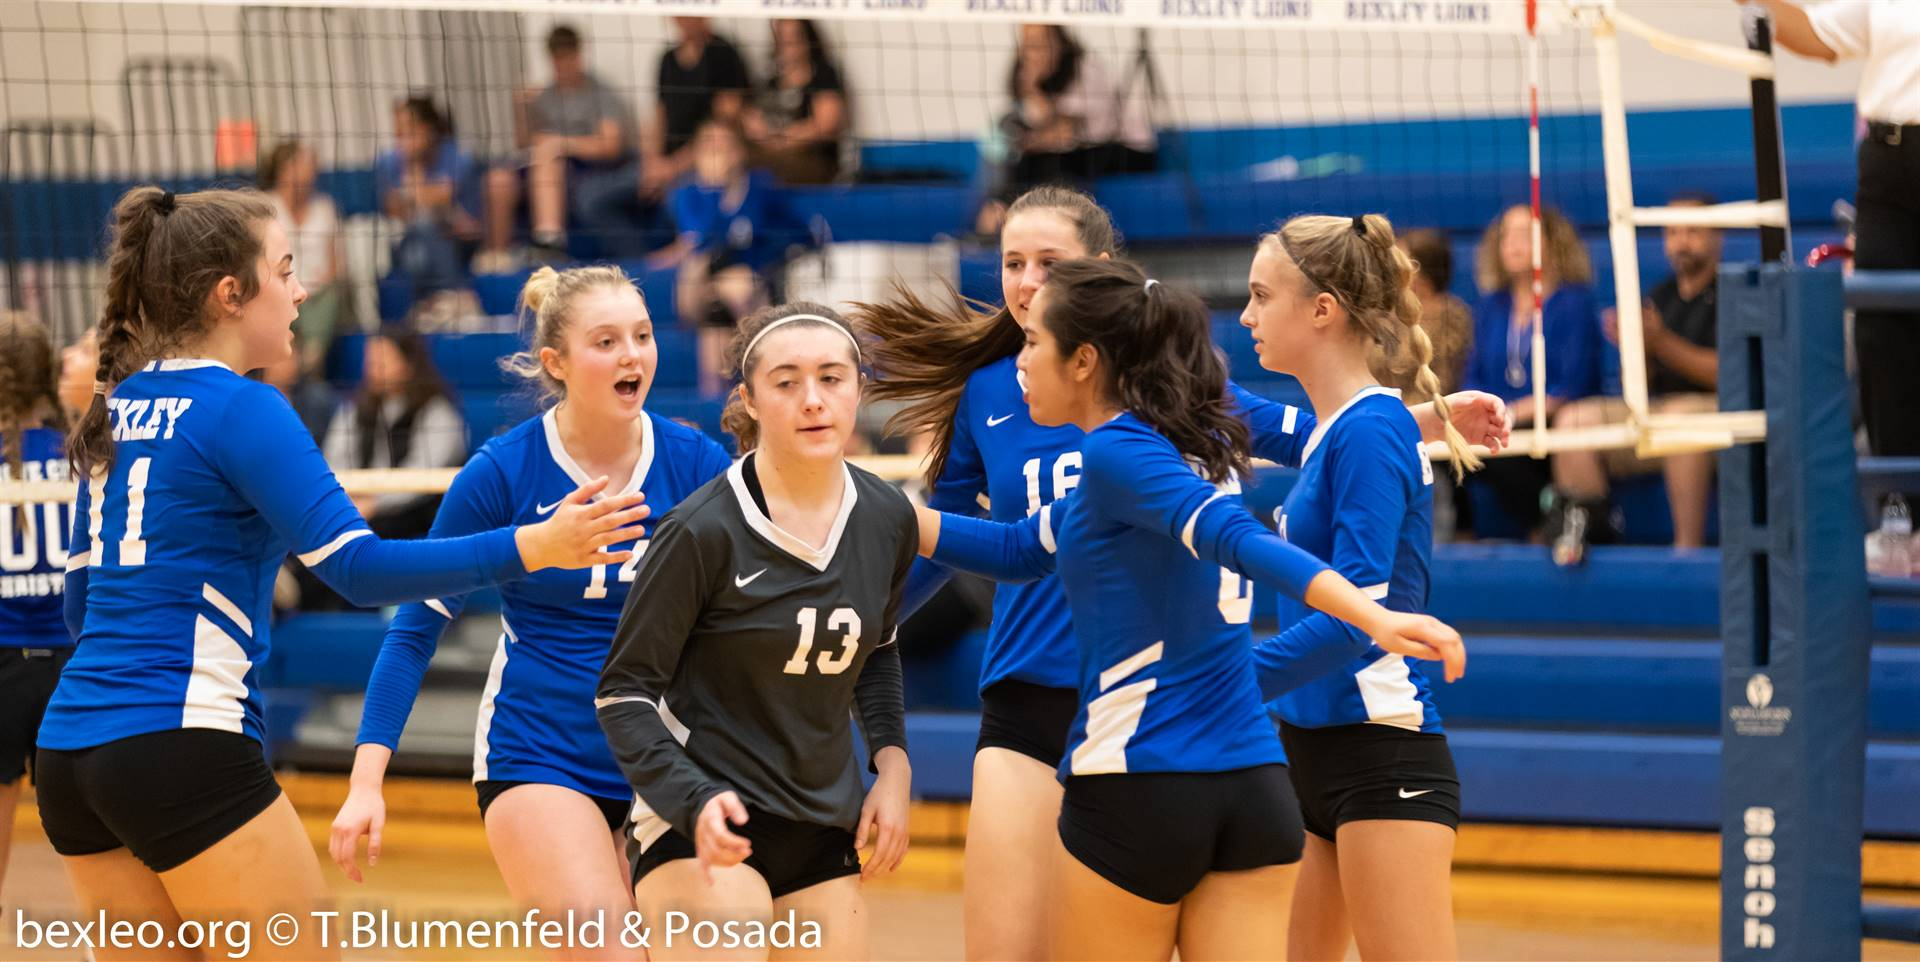 Volleyball players celebrate a point and get ready for the next one